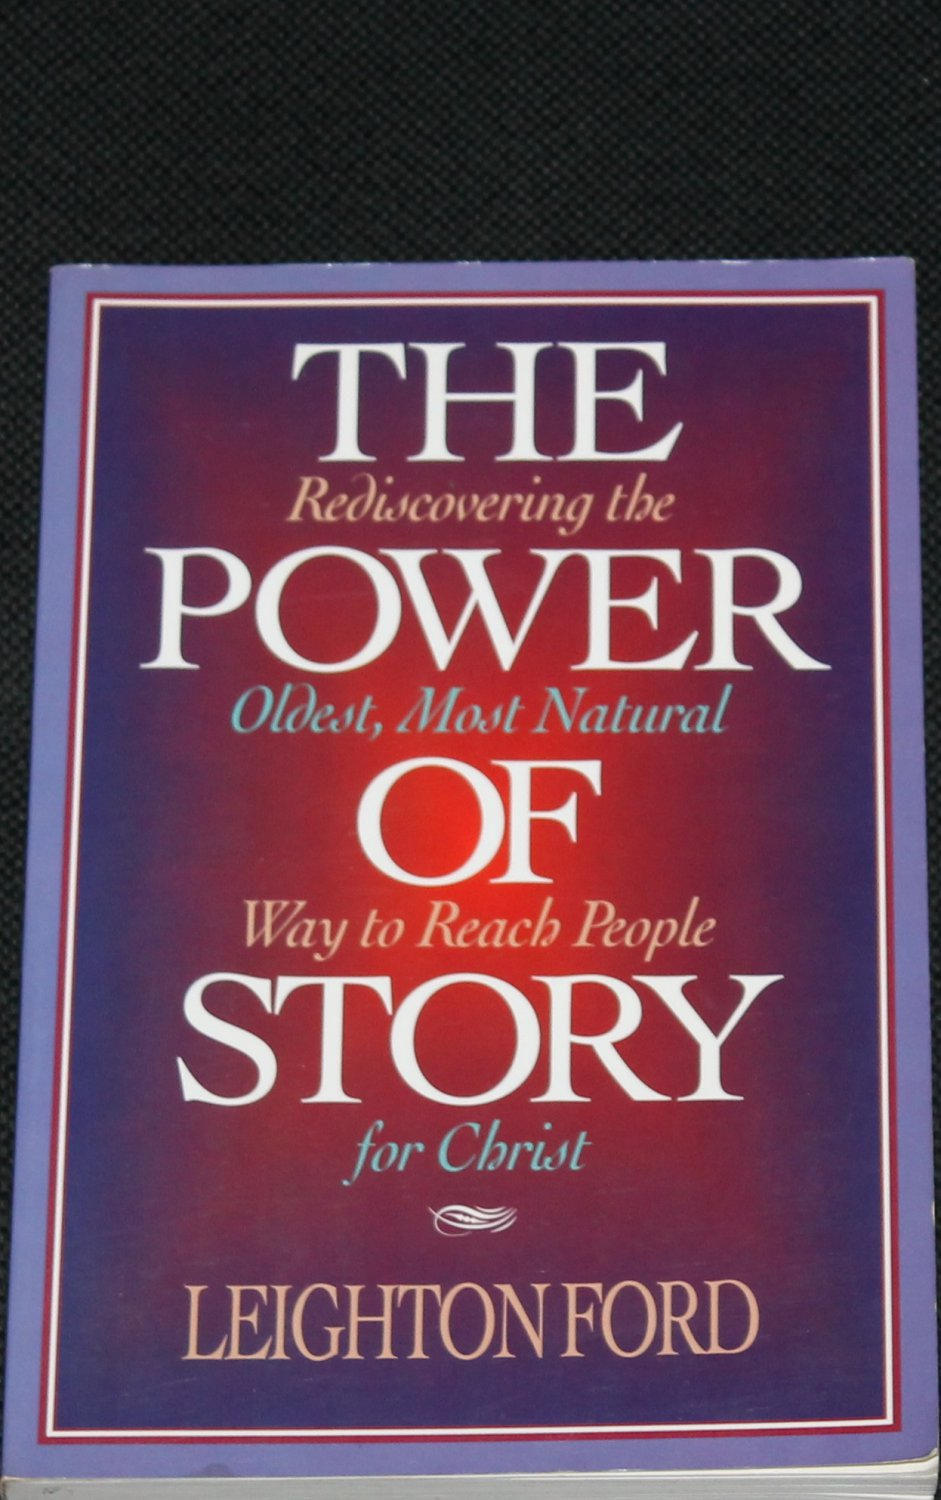 The Power of Story Christian religion religious paperback book by Leighton Ford